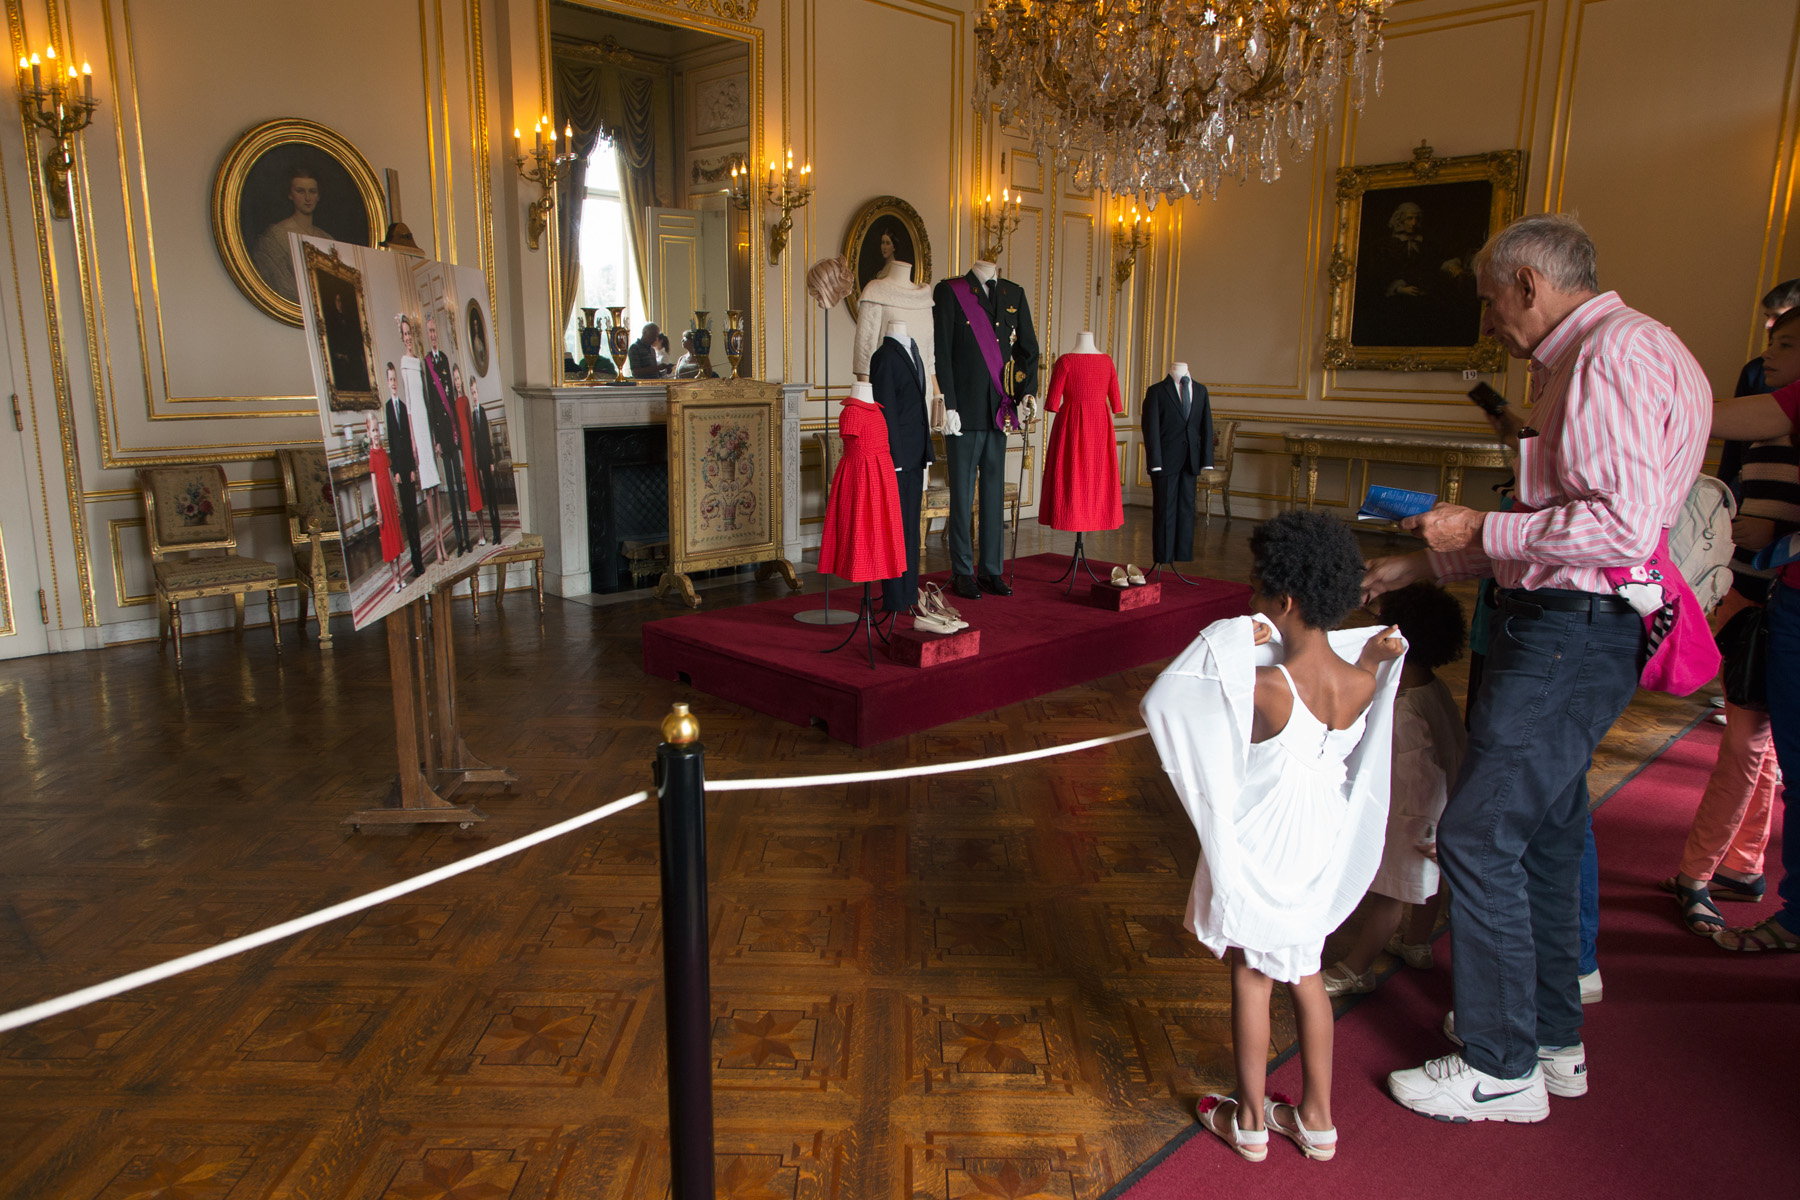 The Royal Palace Dress Code